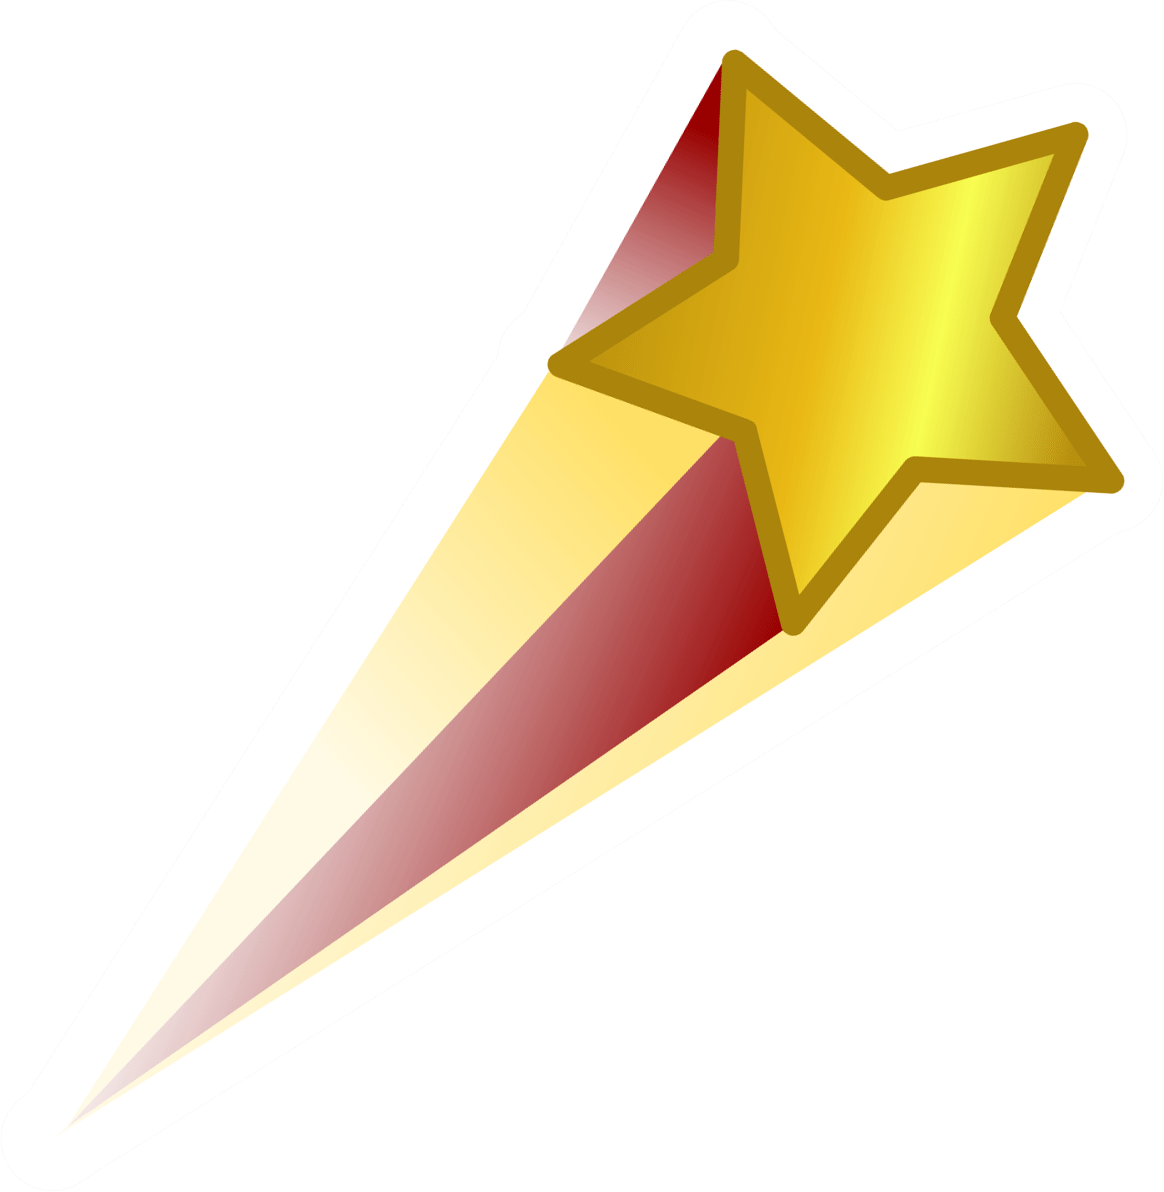 Shooting star clipart no background banner free download Gold Shooting Star transparent PNG - StickPNG banner free download